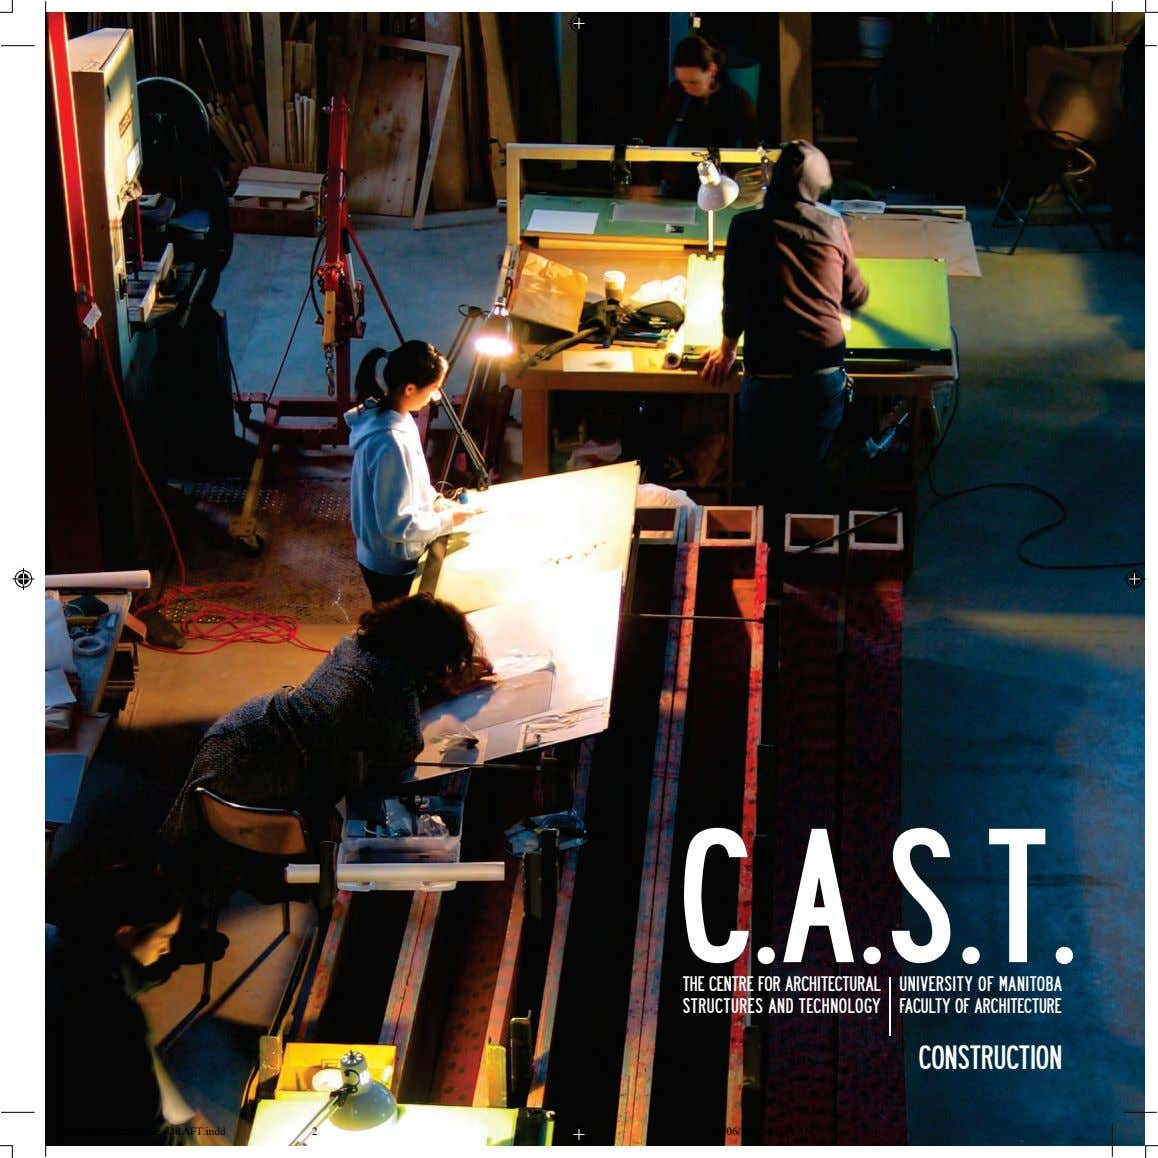 C.A.S.T. THE CENTRE FOR ARCHITECTURAL STRUCTURES AND TECHNOLOGY UNIVERSITY OF MANITOBA FACULTY OF ARCHITECTURE